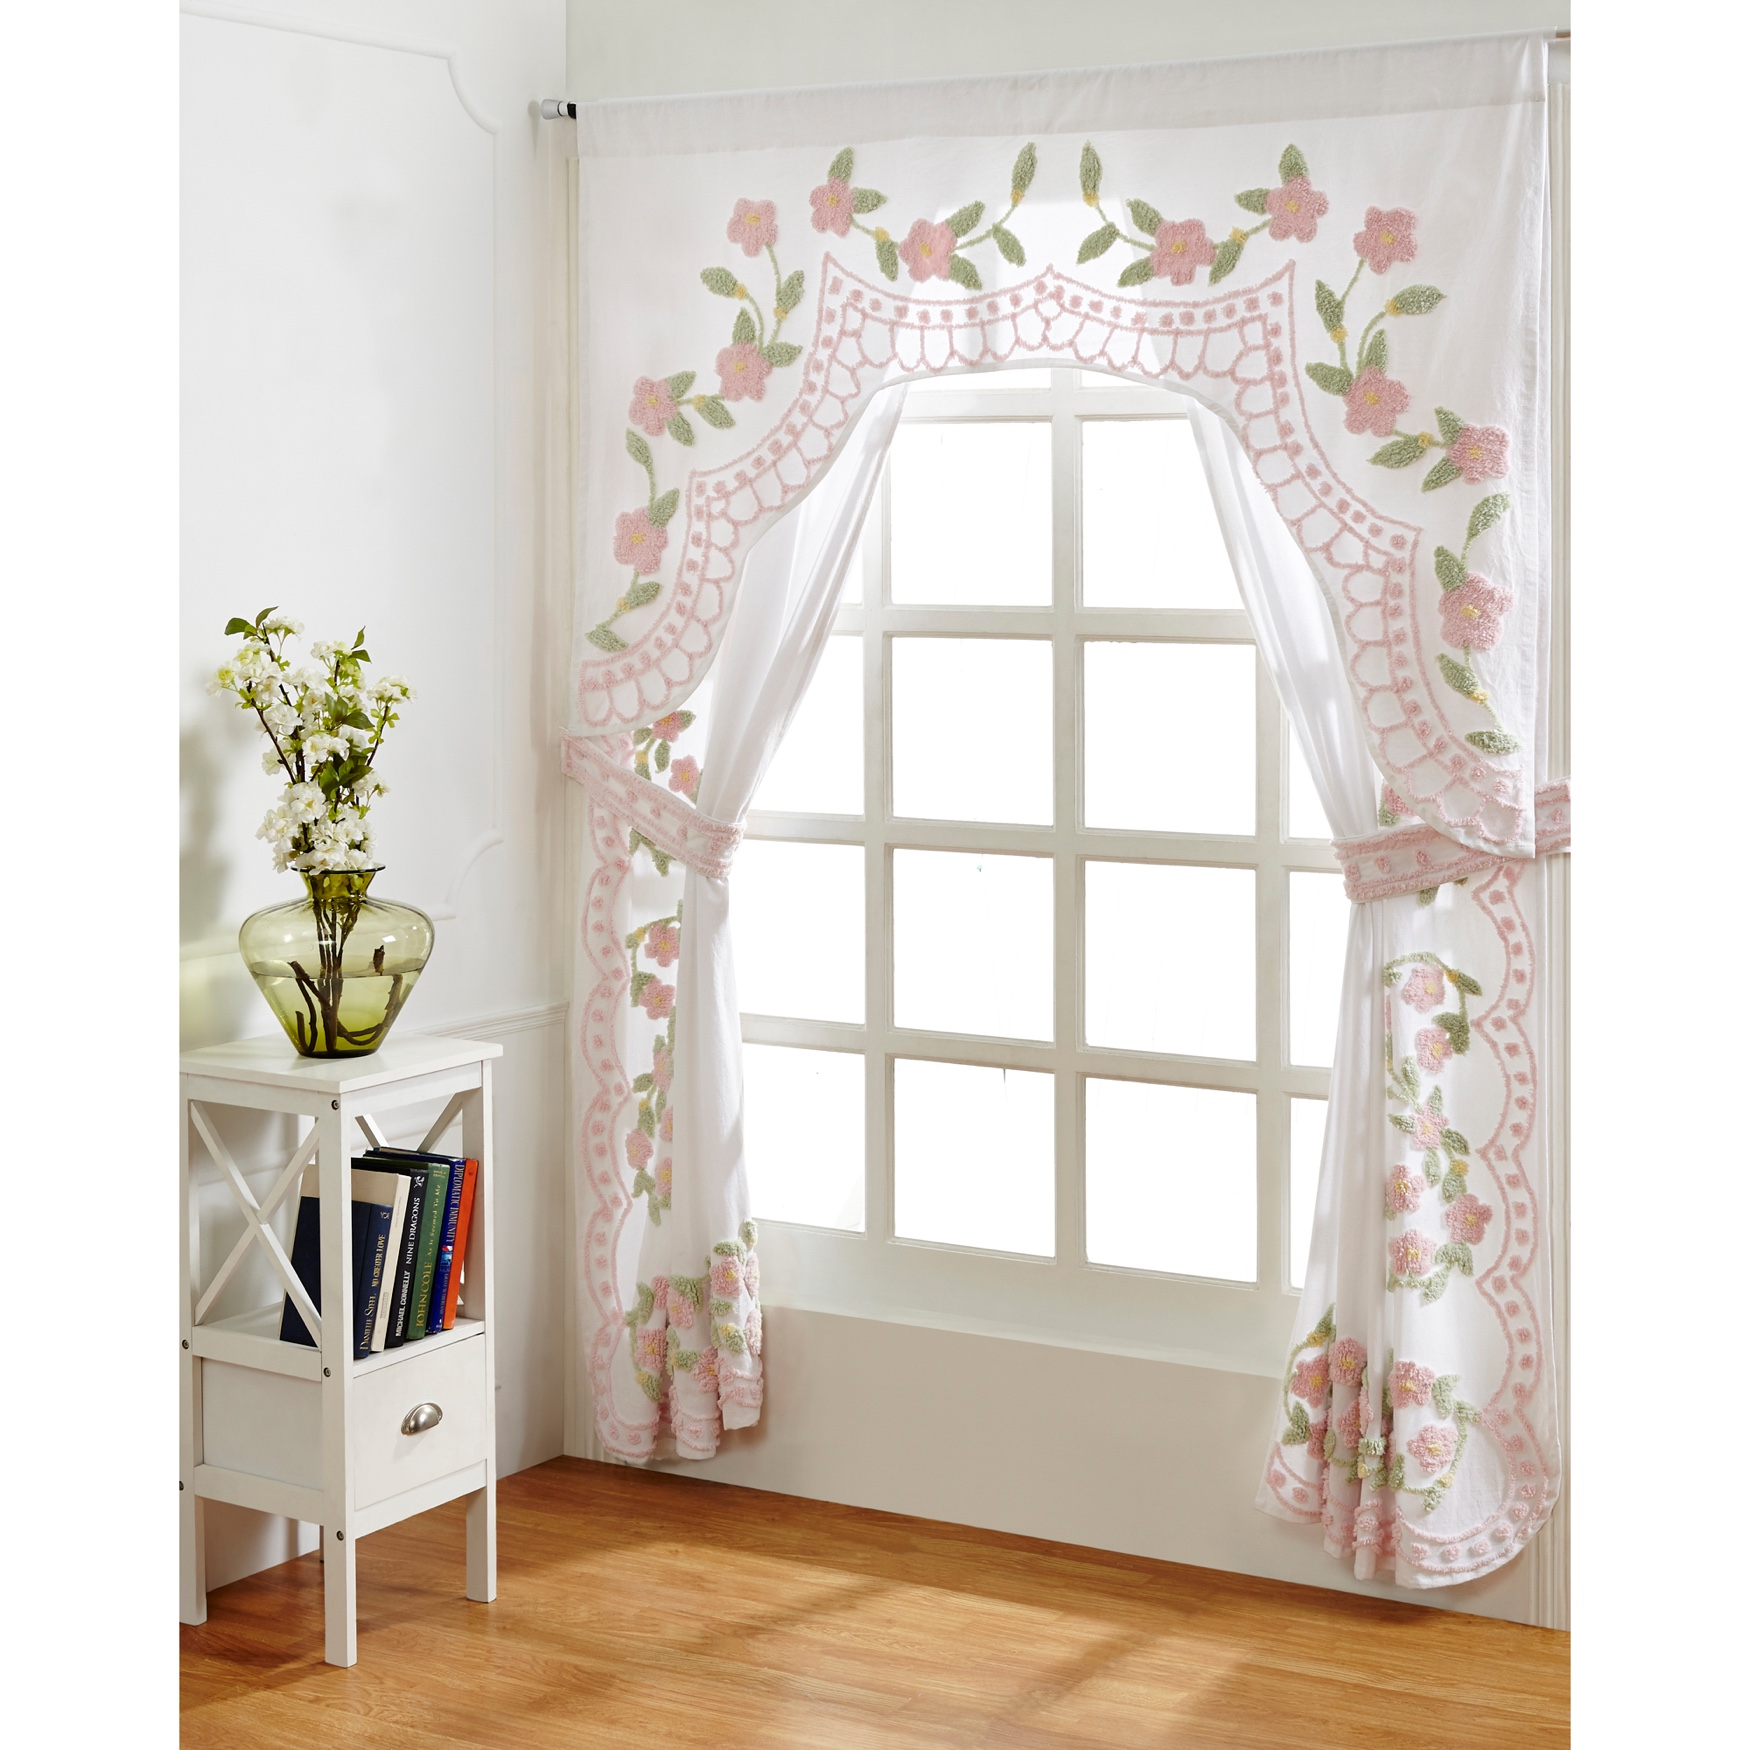 Bloomfield Collection in Floral Design 100% Cotton Tufted Chenille Curtain 2 Piece Set , ROSE